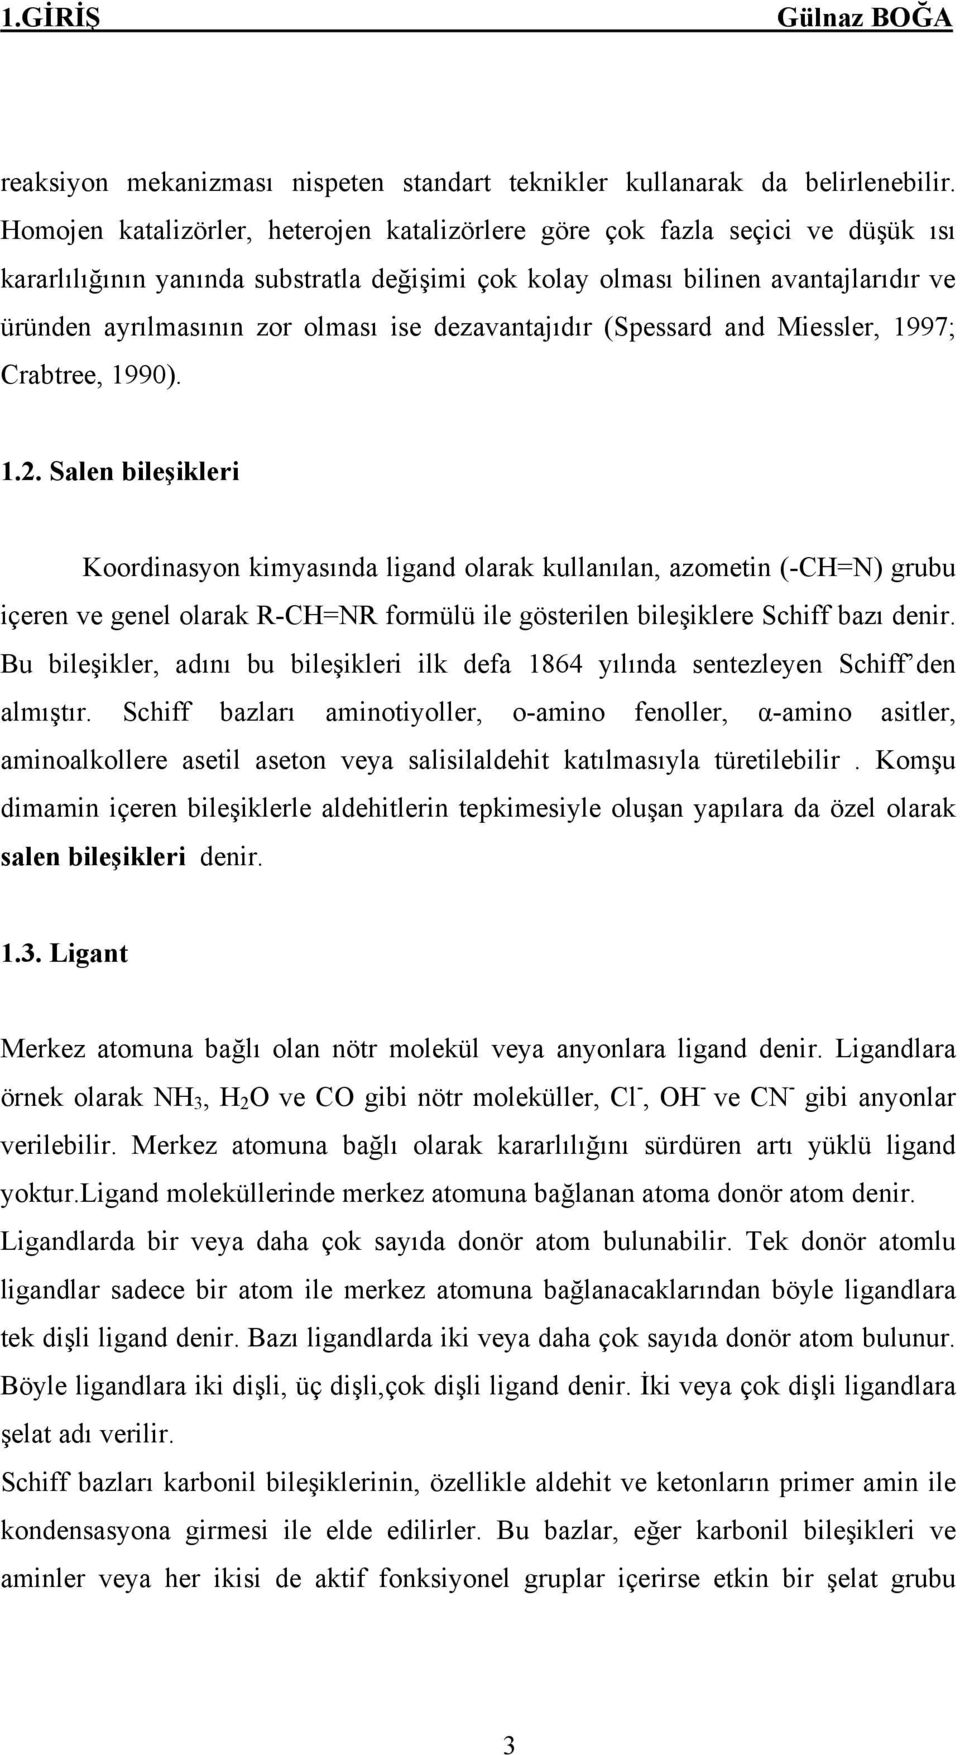 ise dezavantajıdır (Spessard and Miessler, 1997; Crabtree, 1990). 1.2.